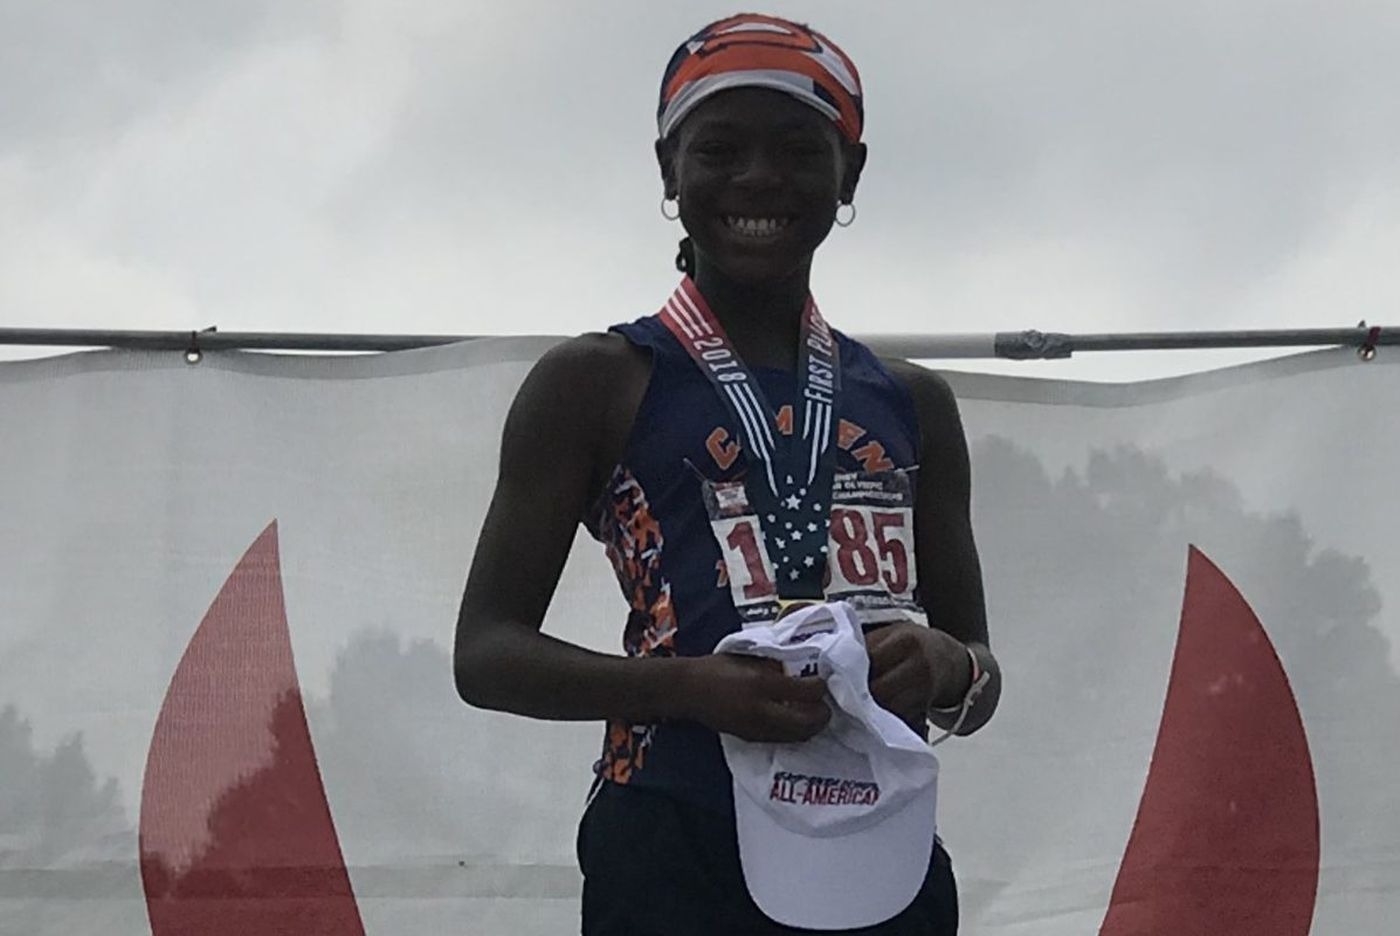 10-year-old Camden runner breaks 24-year-old record at Junior Olympics